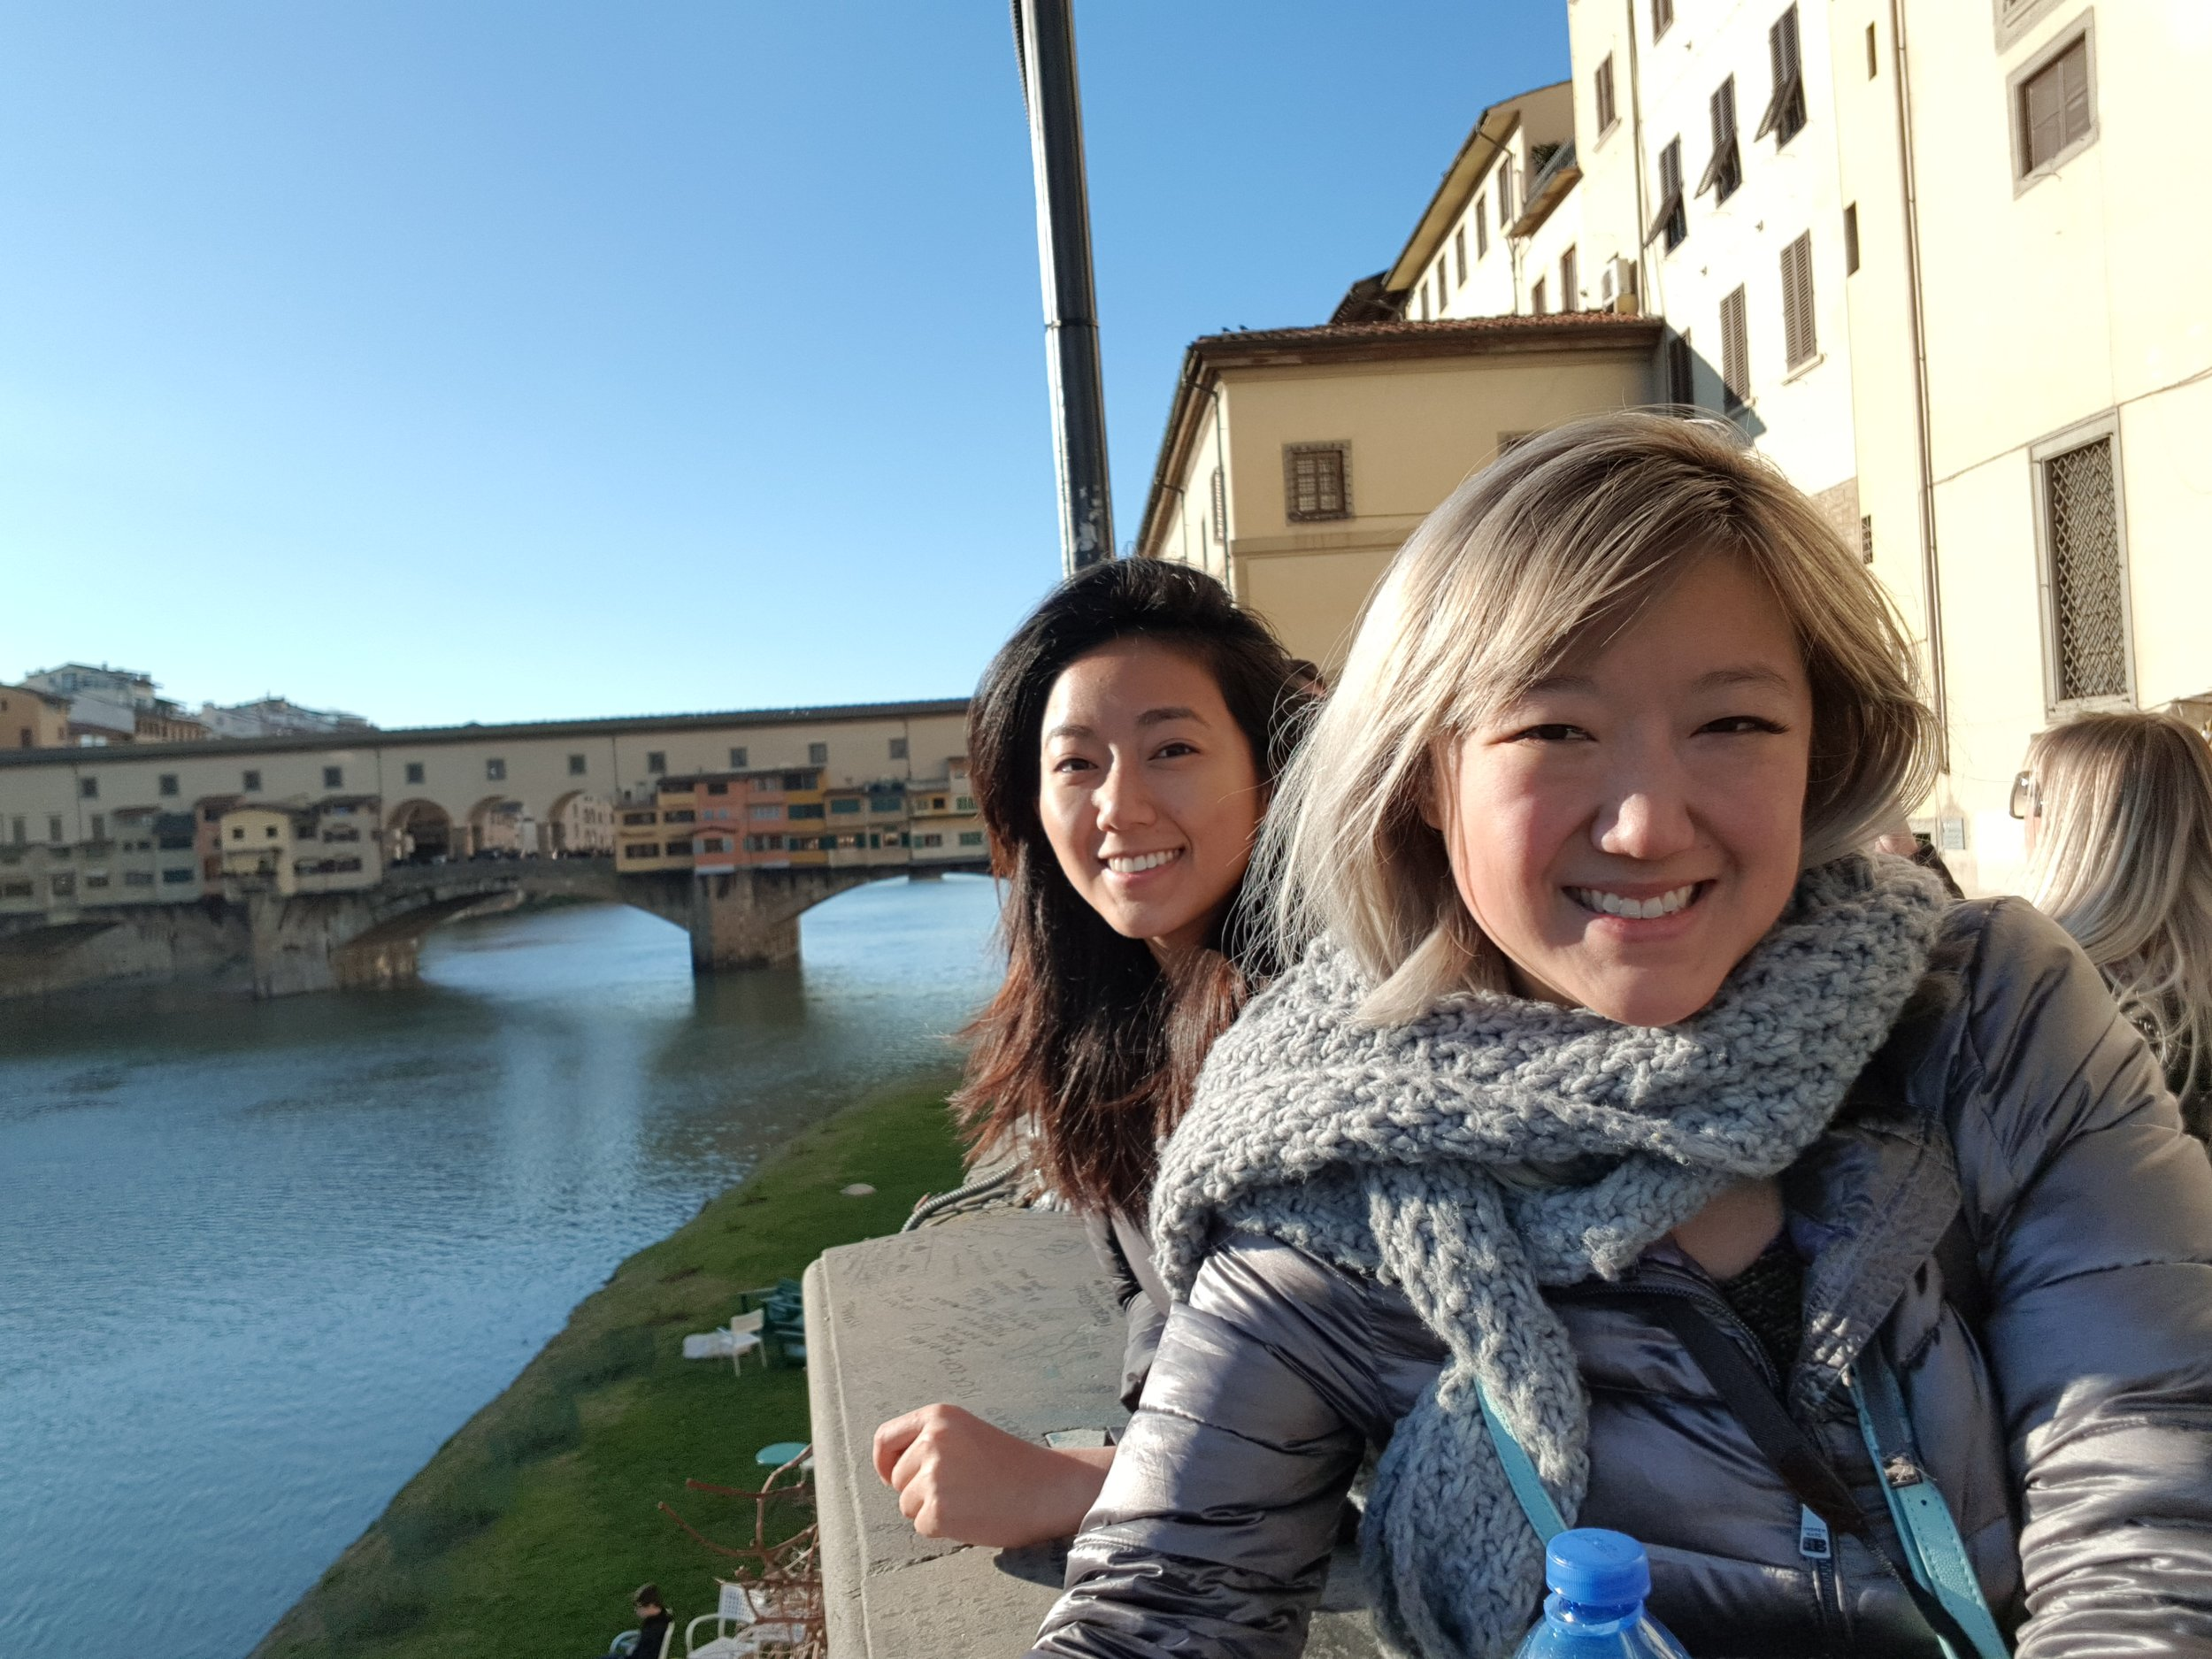 """For some reason, the thing my mom remembers the most about Florence is the Ponte Vecchio. So we made sure to take a picture next to it. I'm not saying I don't remember it, but thanks to Assassin's Creed, I will never not associate it with the place where  Ezio Auditore got his ignoble start  by dueling with a rival family's dickhead of a son. BTW, when I first played ACII, I was like """"Wow! This actually looks exactly like how I remember Florence to be!"""" and this time when I went back to Florence I was like """"Wow! This actually looks exactly like how I remembered ACII's Florence to be!"""" So good job, Ubisoft. You made me want to climb everything I saw."""